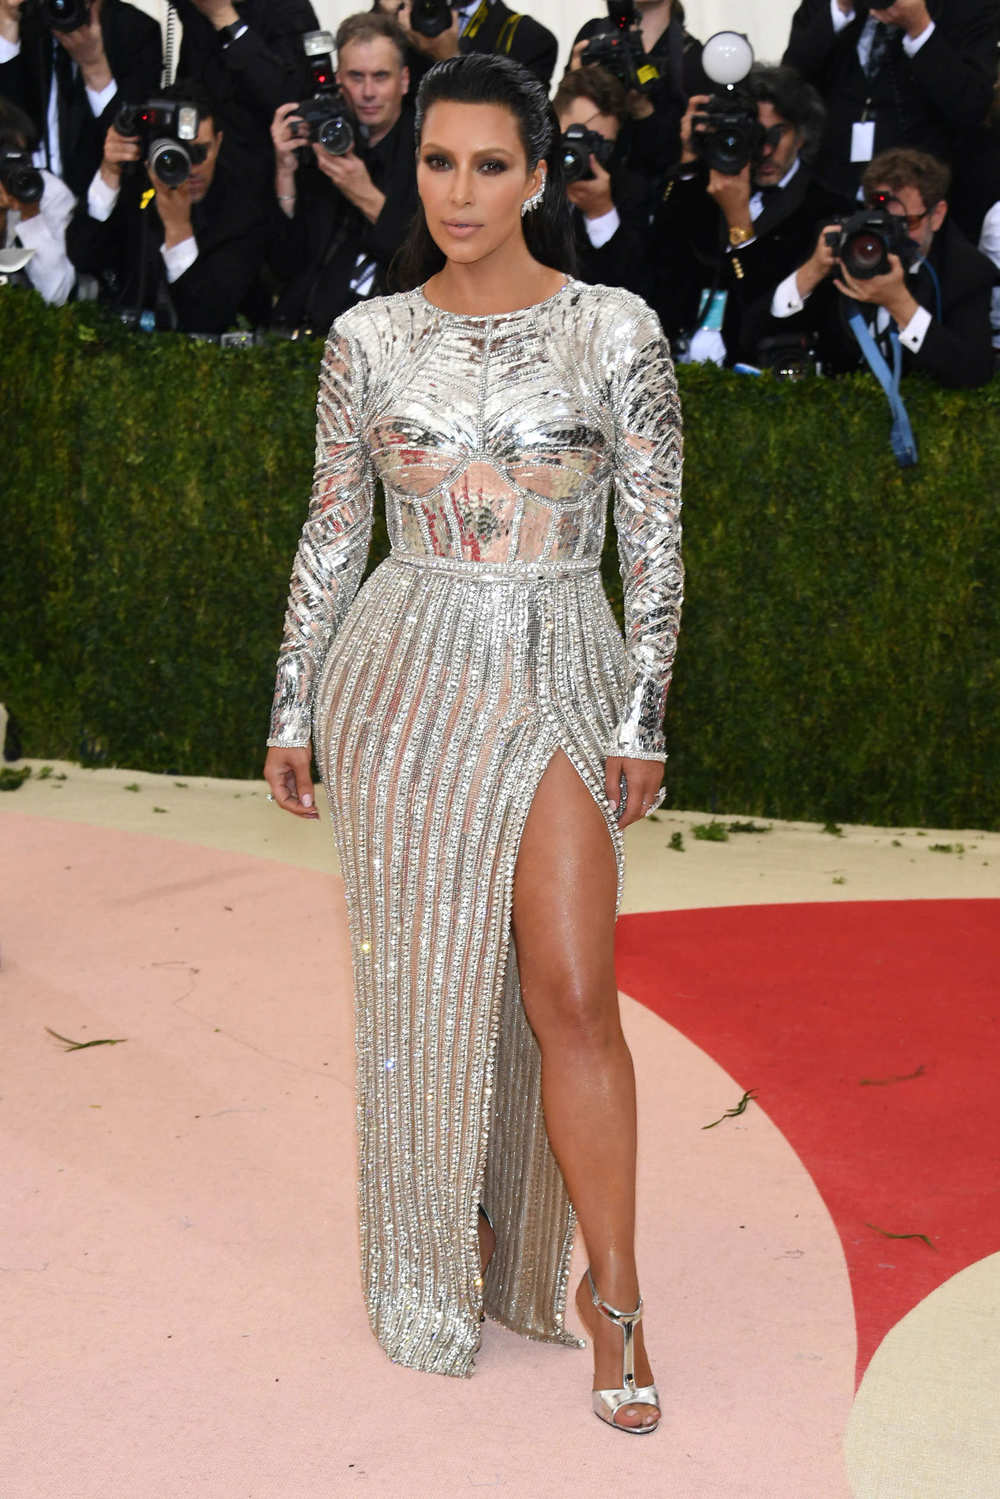 Kim Kardashian in Balmain at the Met Gala 2016.